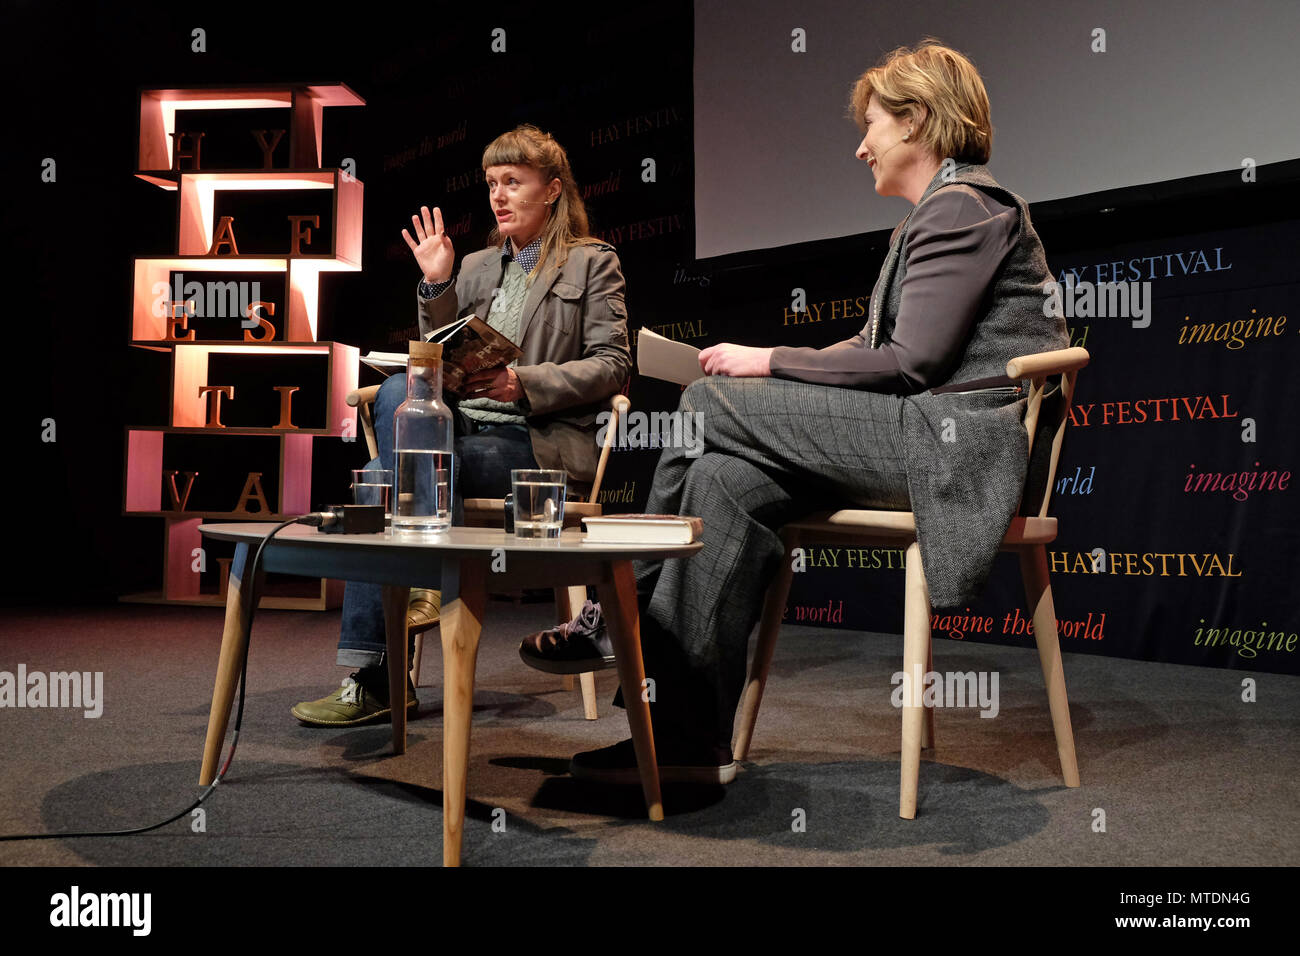 Hay Festival, Hay on Wye, UK - Wednesday 30th May 2018 - Author Nicola Barker talks about her new post-post apocalyptic novel H(A)PPY with host Georgina Godwin ( on right ) - Photo Steven May / Alamy Live News - Stock Image